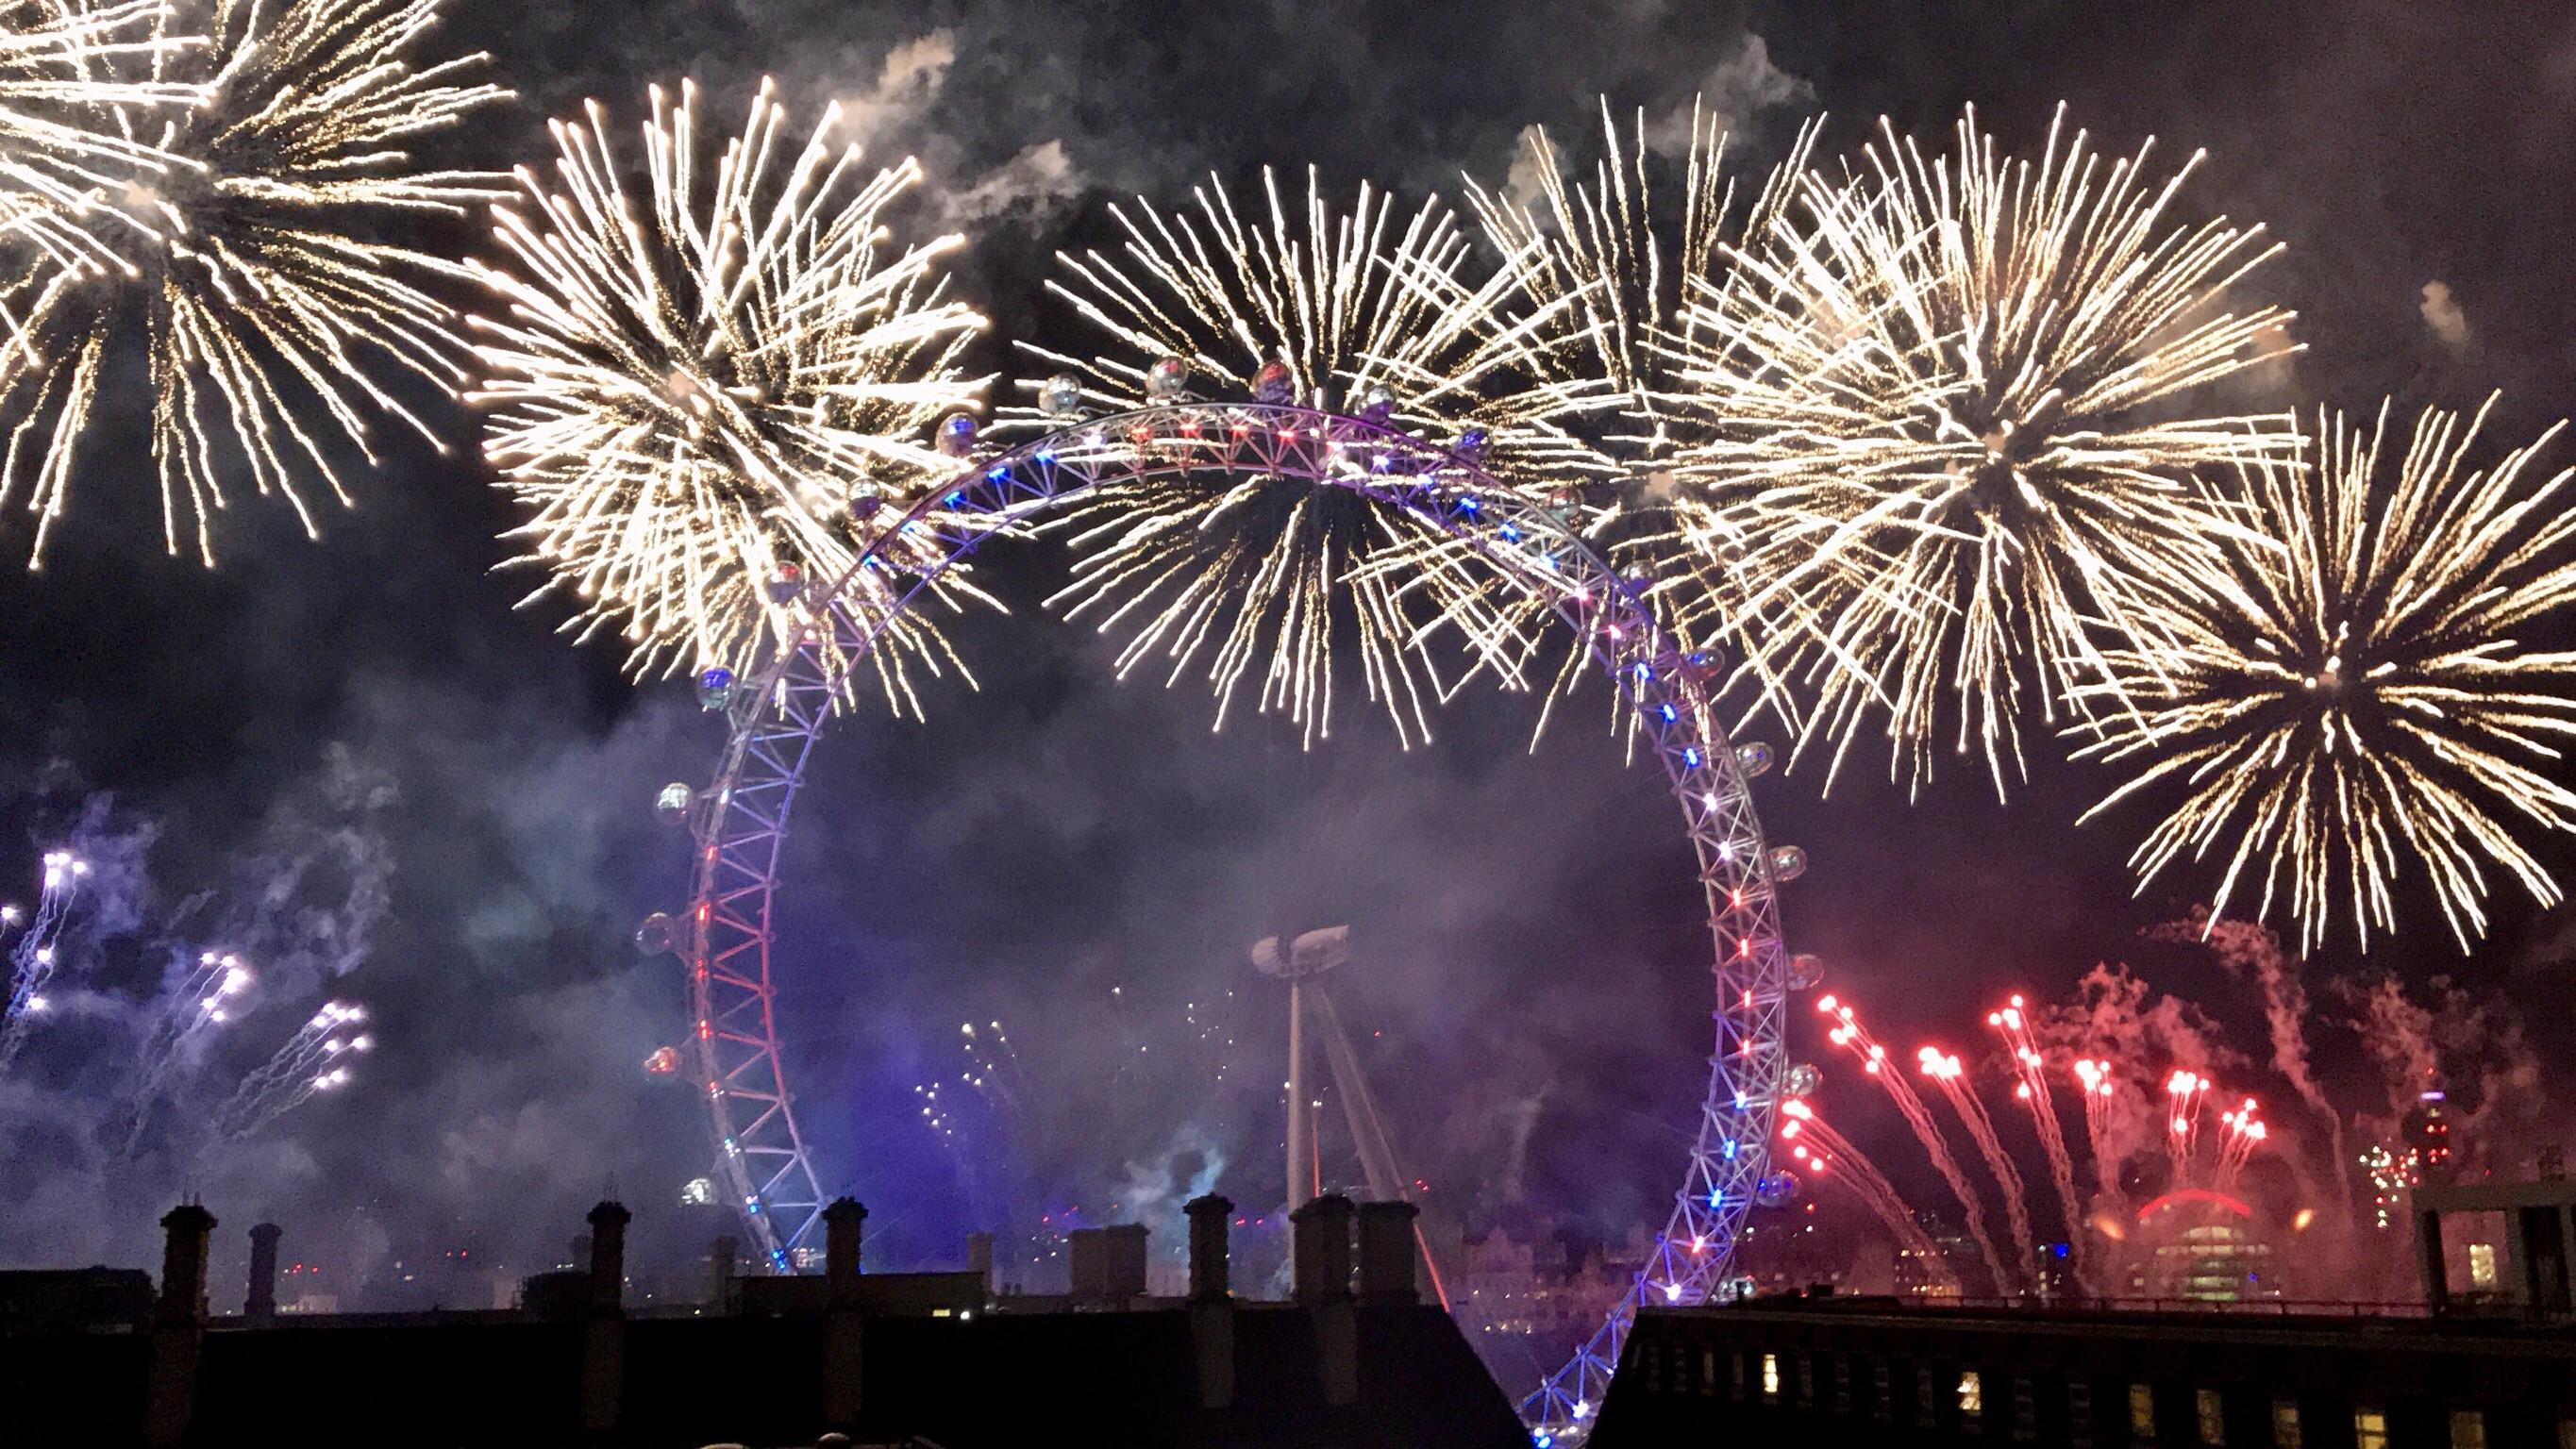 Visiting London from Texas  Amazing fireworks display  Happy New     Visiting London from Texas  Amazing fireworks display  Happy New Year image